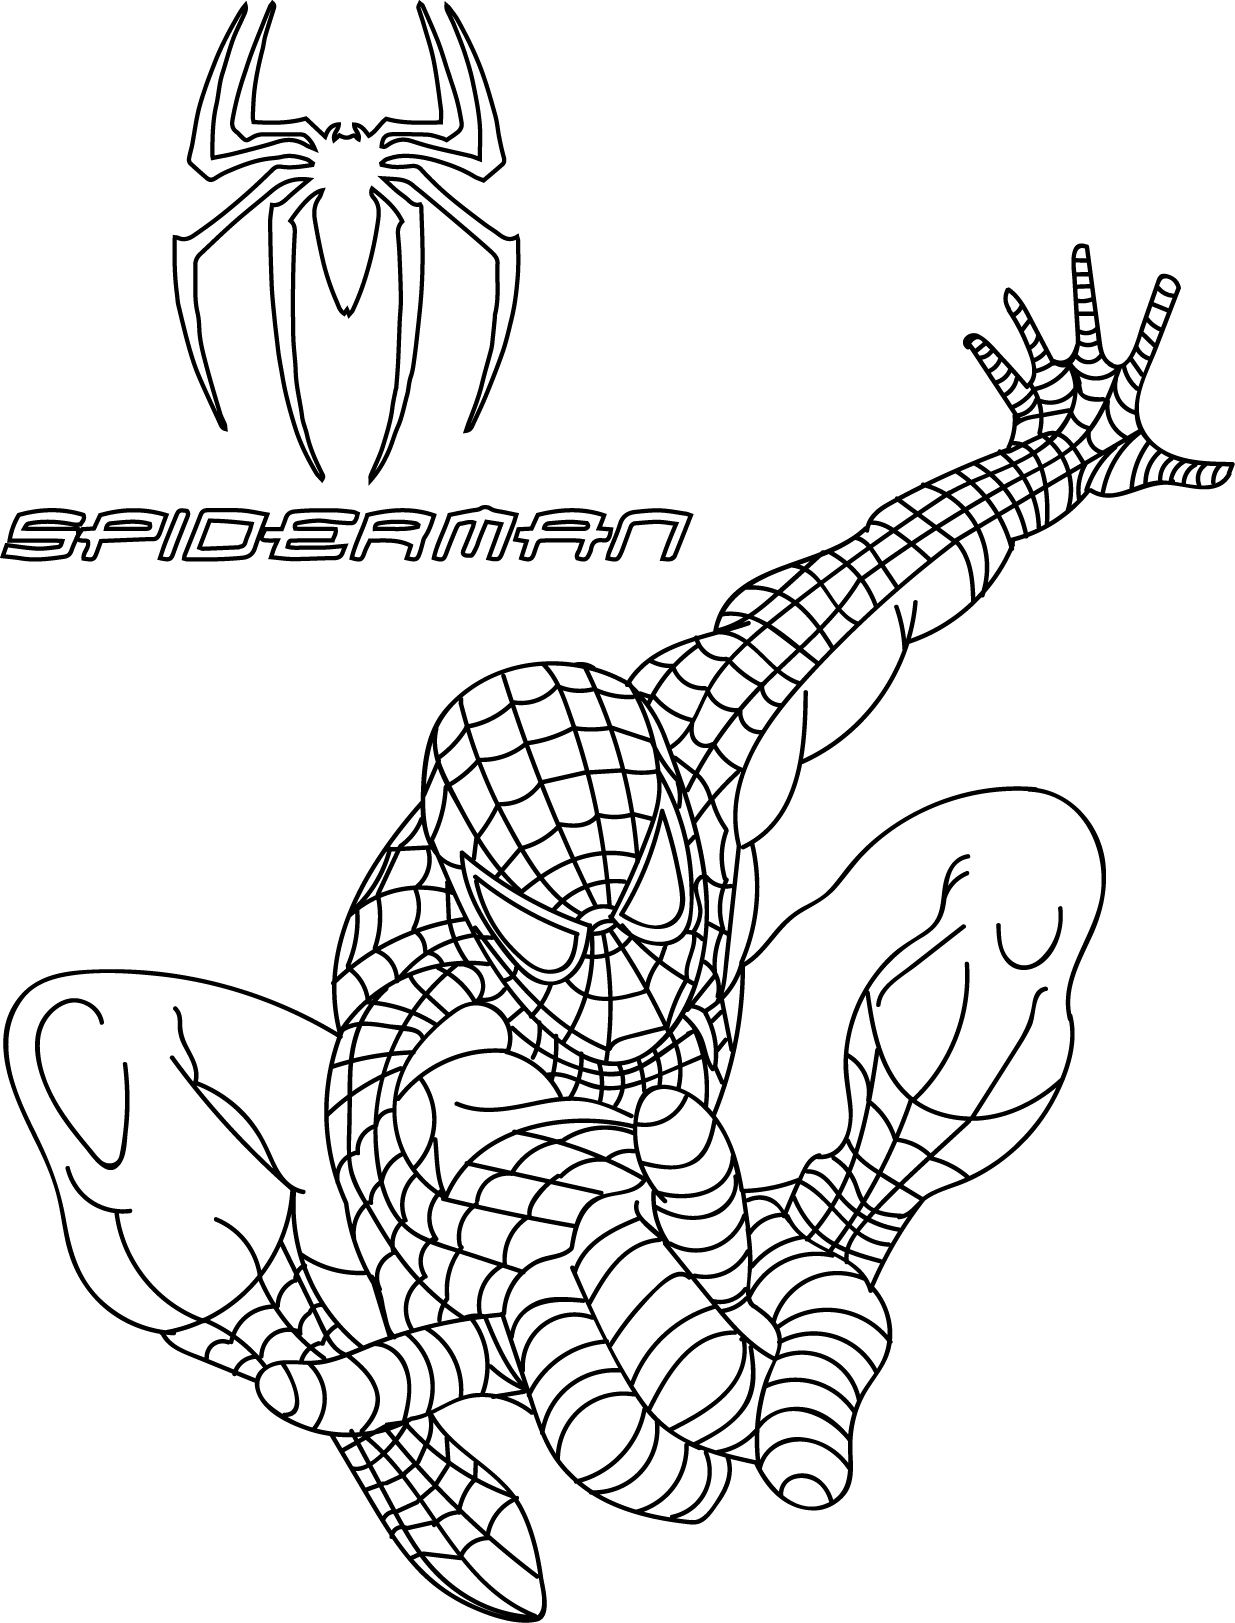 Spiderman Coloring Pages Wecoloringpage Spiderman Coloring Love Coloring Pages Coloring Book Pages